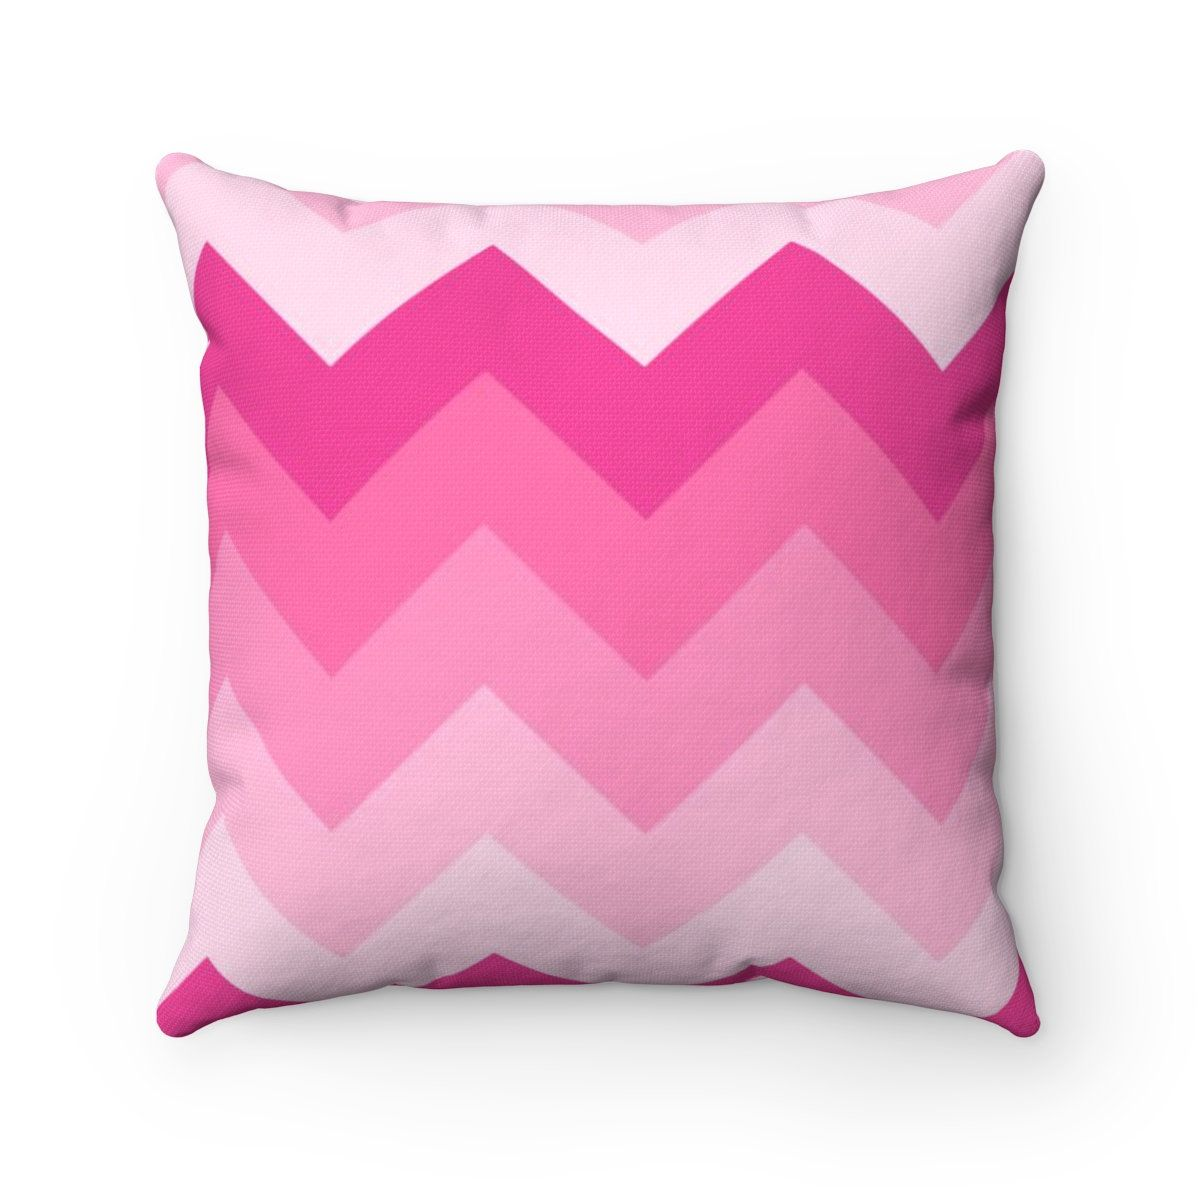 Hot Pink Pillow Chevron Ombre Fade Polyester Square Pillow Girls